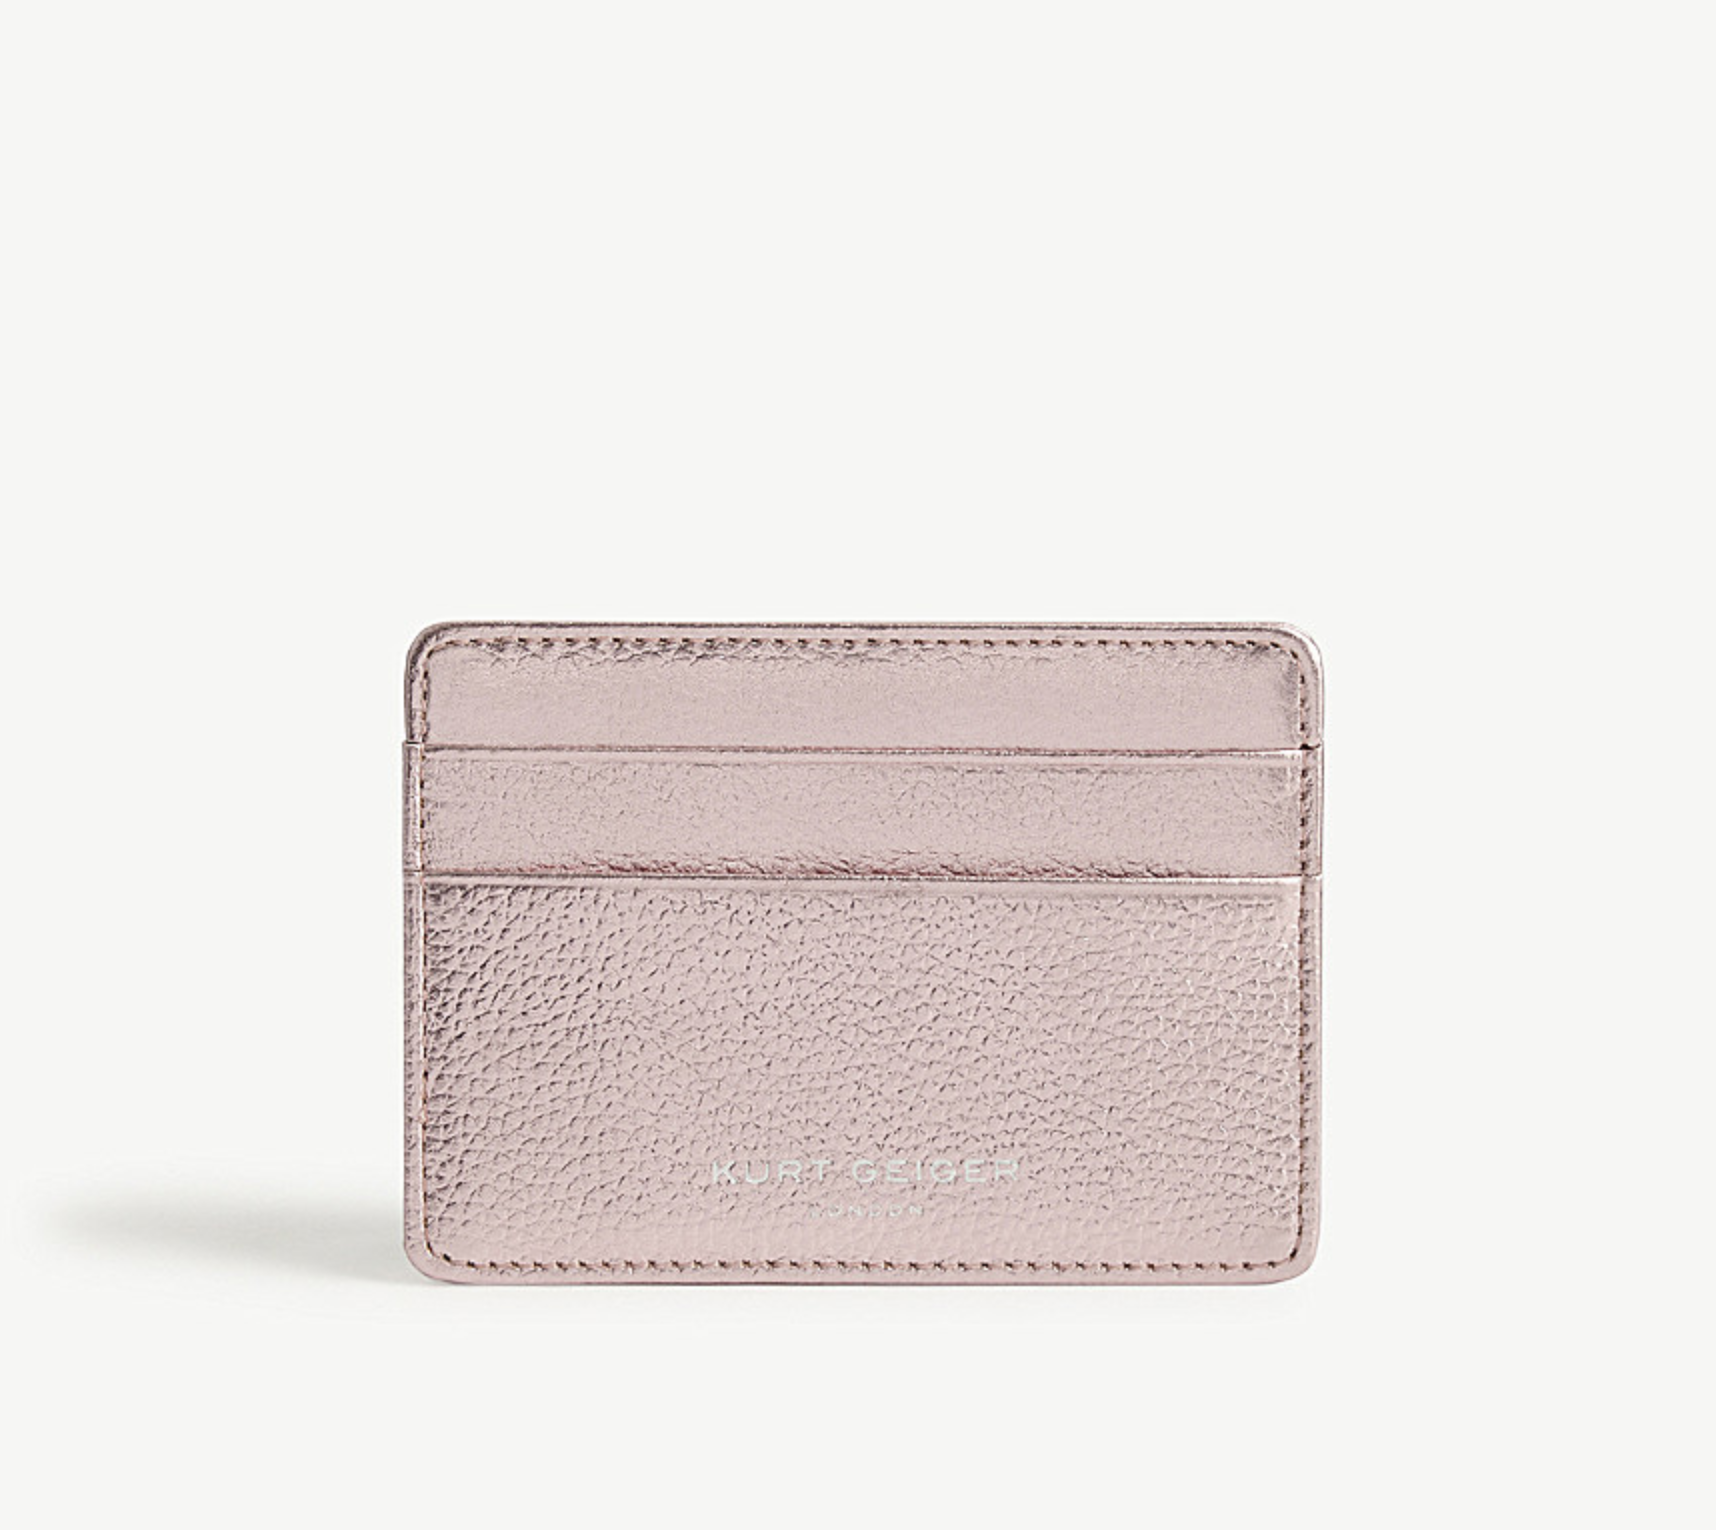 KURT GEIGER LONDON-Metallic leather card holder-£35.00 - How gorgeous is this colour? With a bold metallic hue and sumptuously soft grained leather construction, this streamlined card holder is perfect for storing monetary essentials with its four fitted slots. Perfect for the ones who don't want to carry around a big wallet.